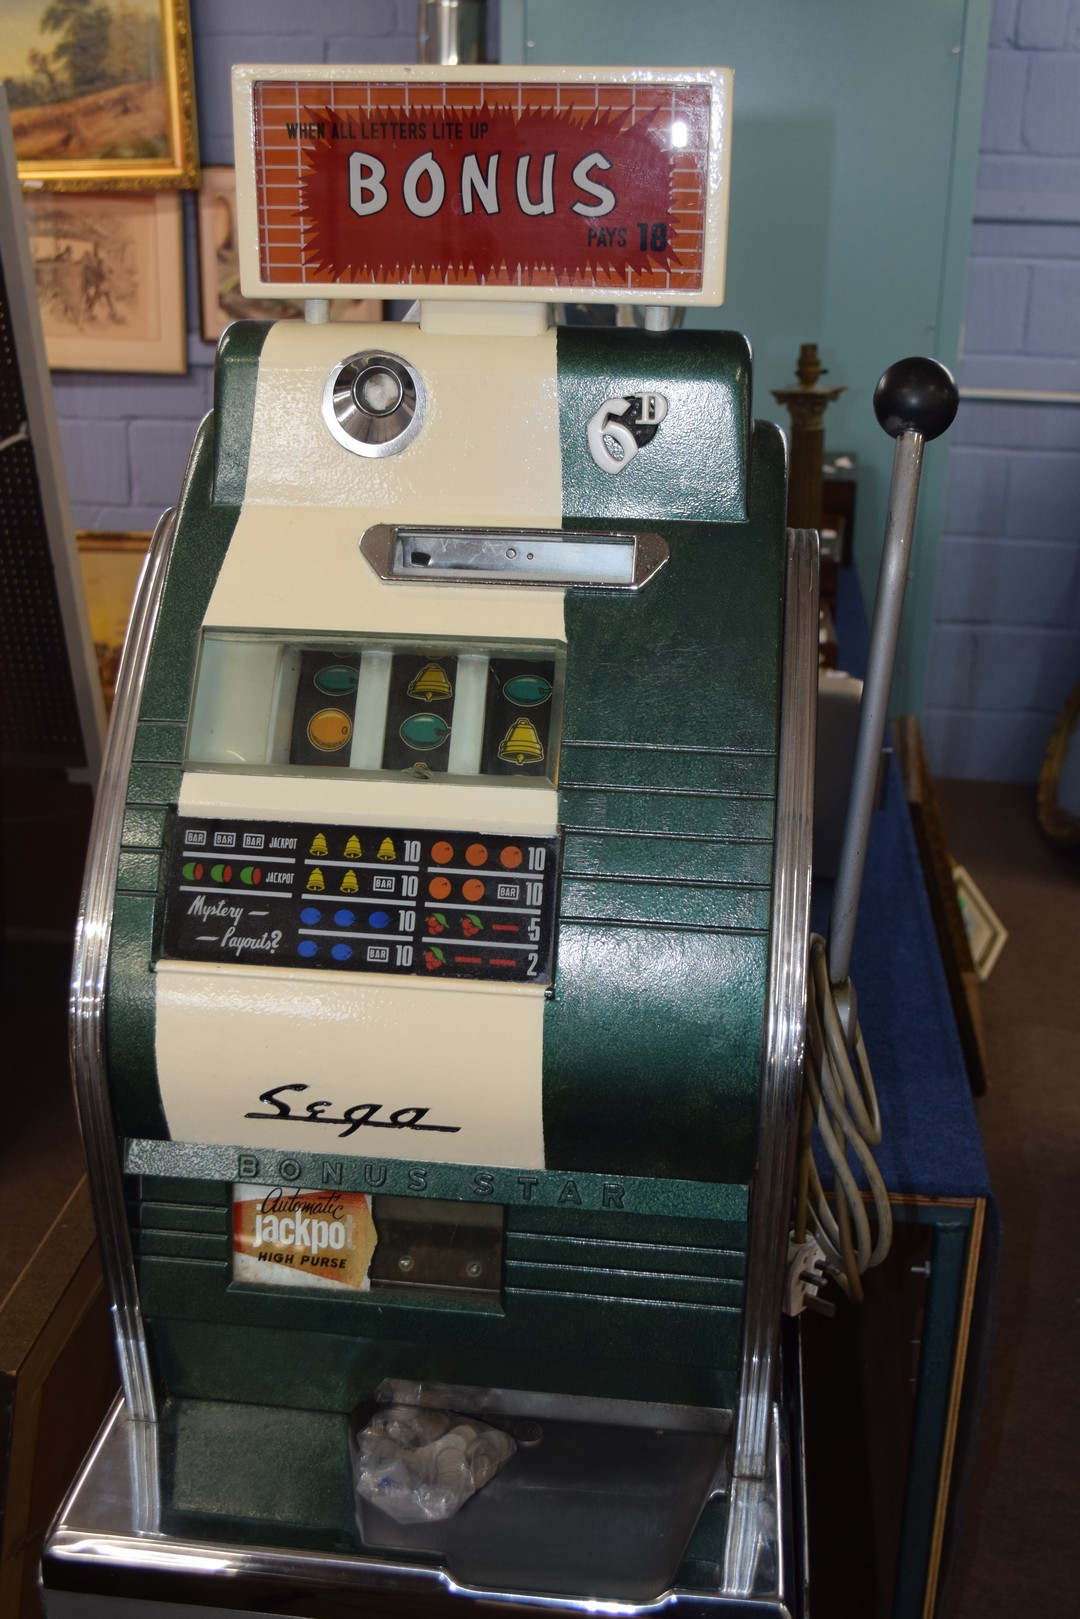 Bonus Star by Sega one-armed bandit fruit machine with electric light-up, approx 80cm high, together - Image 3 of 11